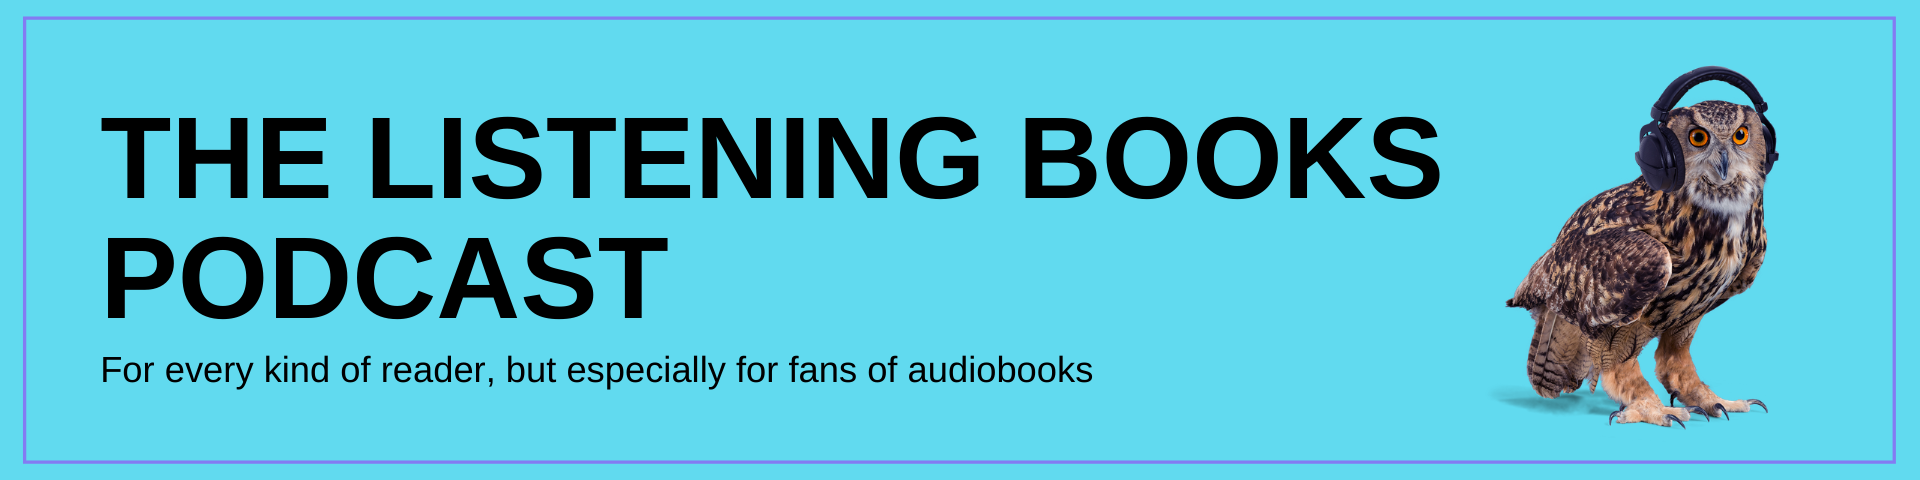 Blue background with an owl wearing headphones on the right. Text reads The Listening Books Podcast: For every kind of reader, but especially for fans of audiobooks